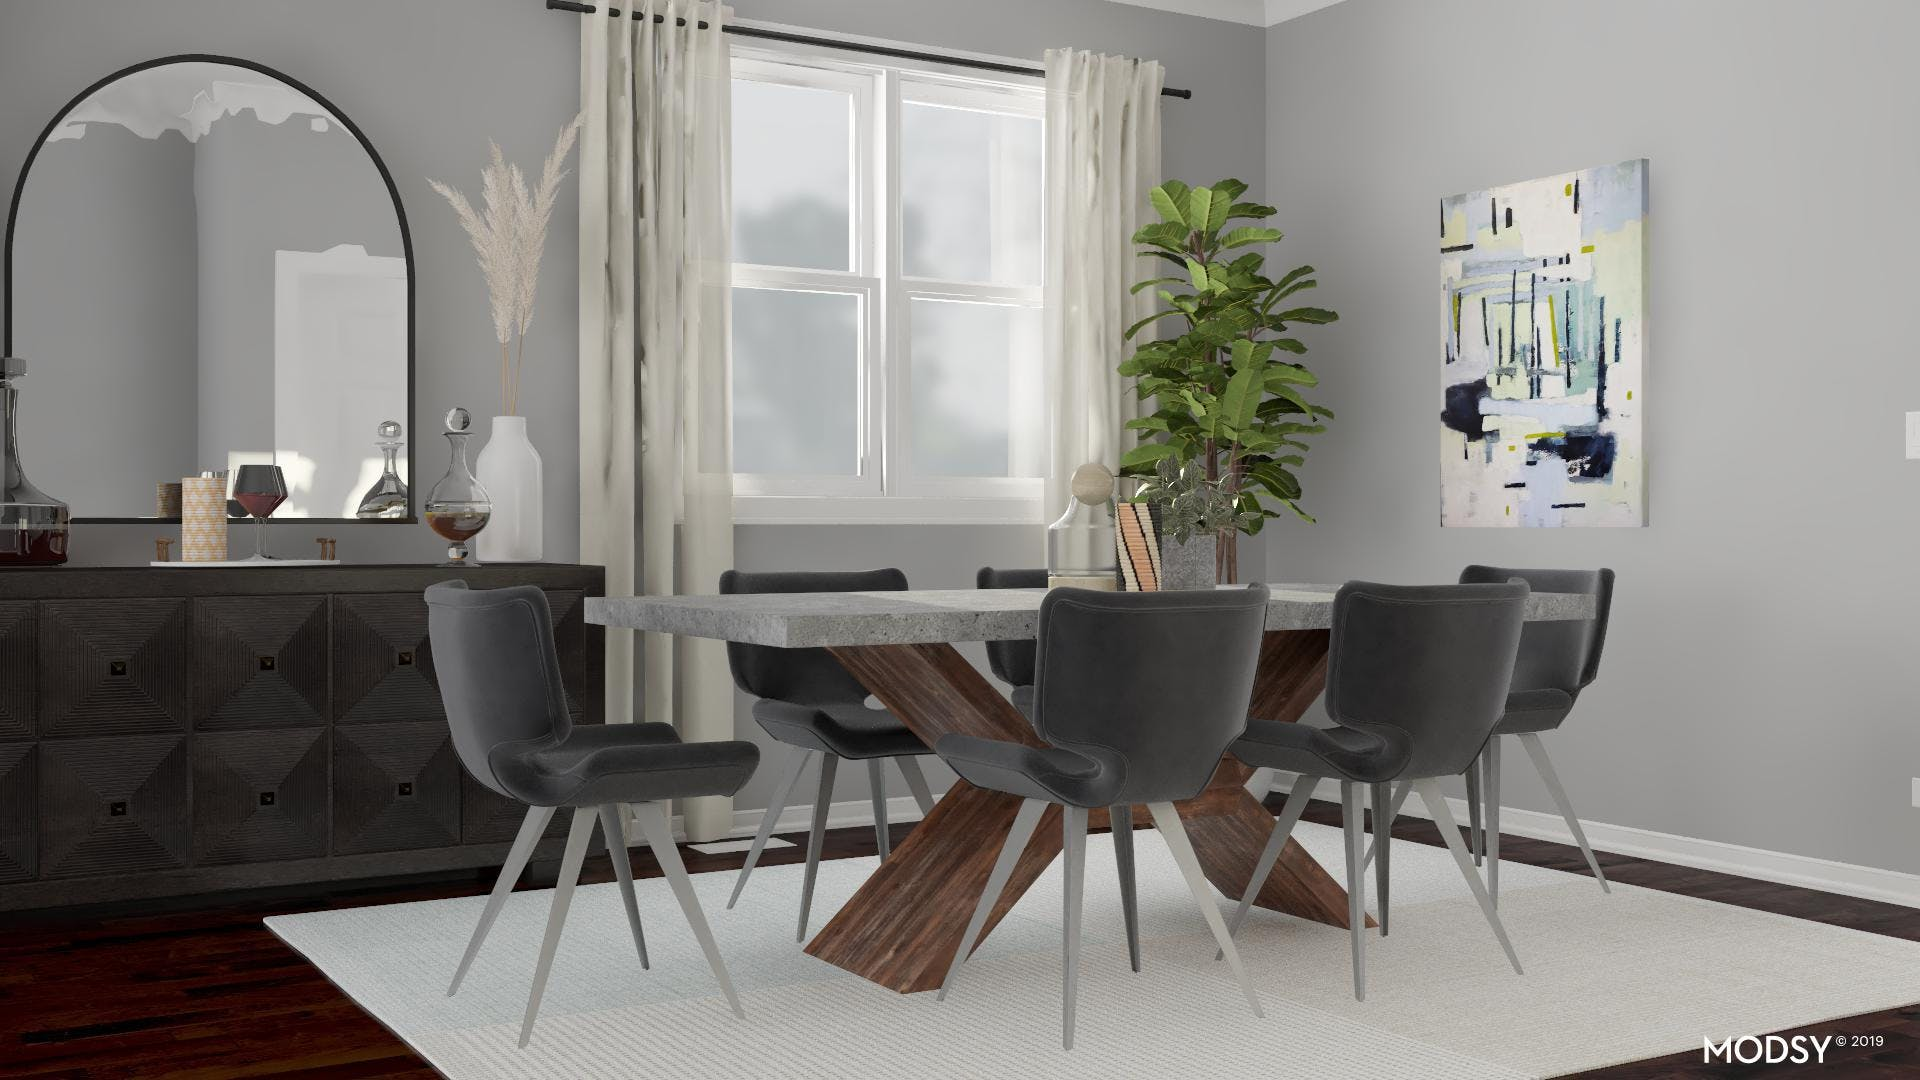 Creating an Inviting Dining Space